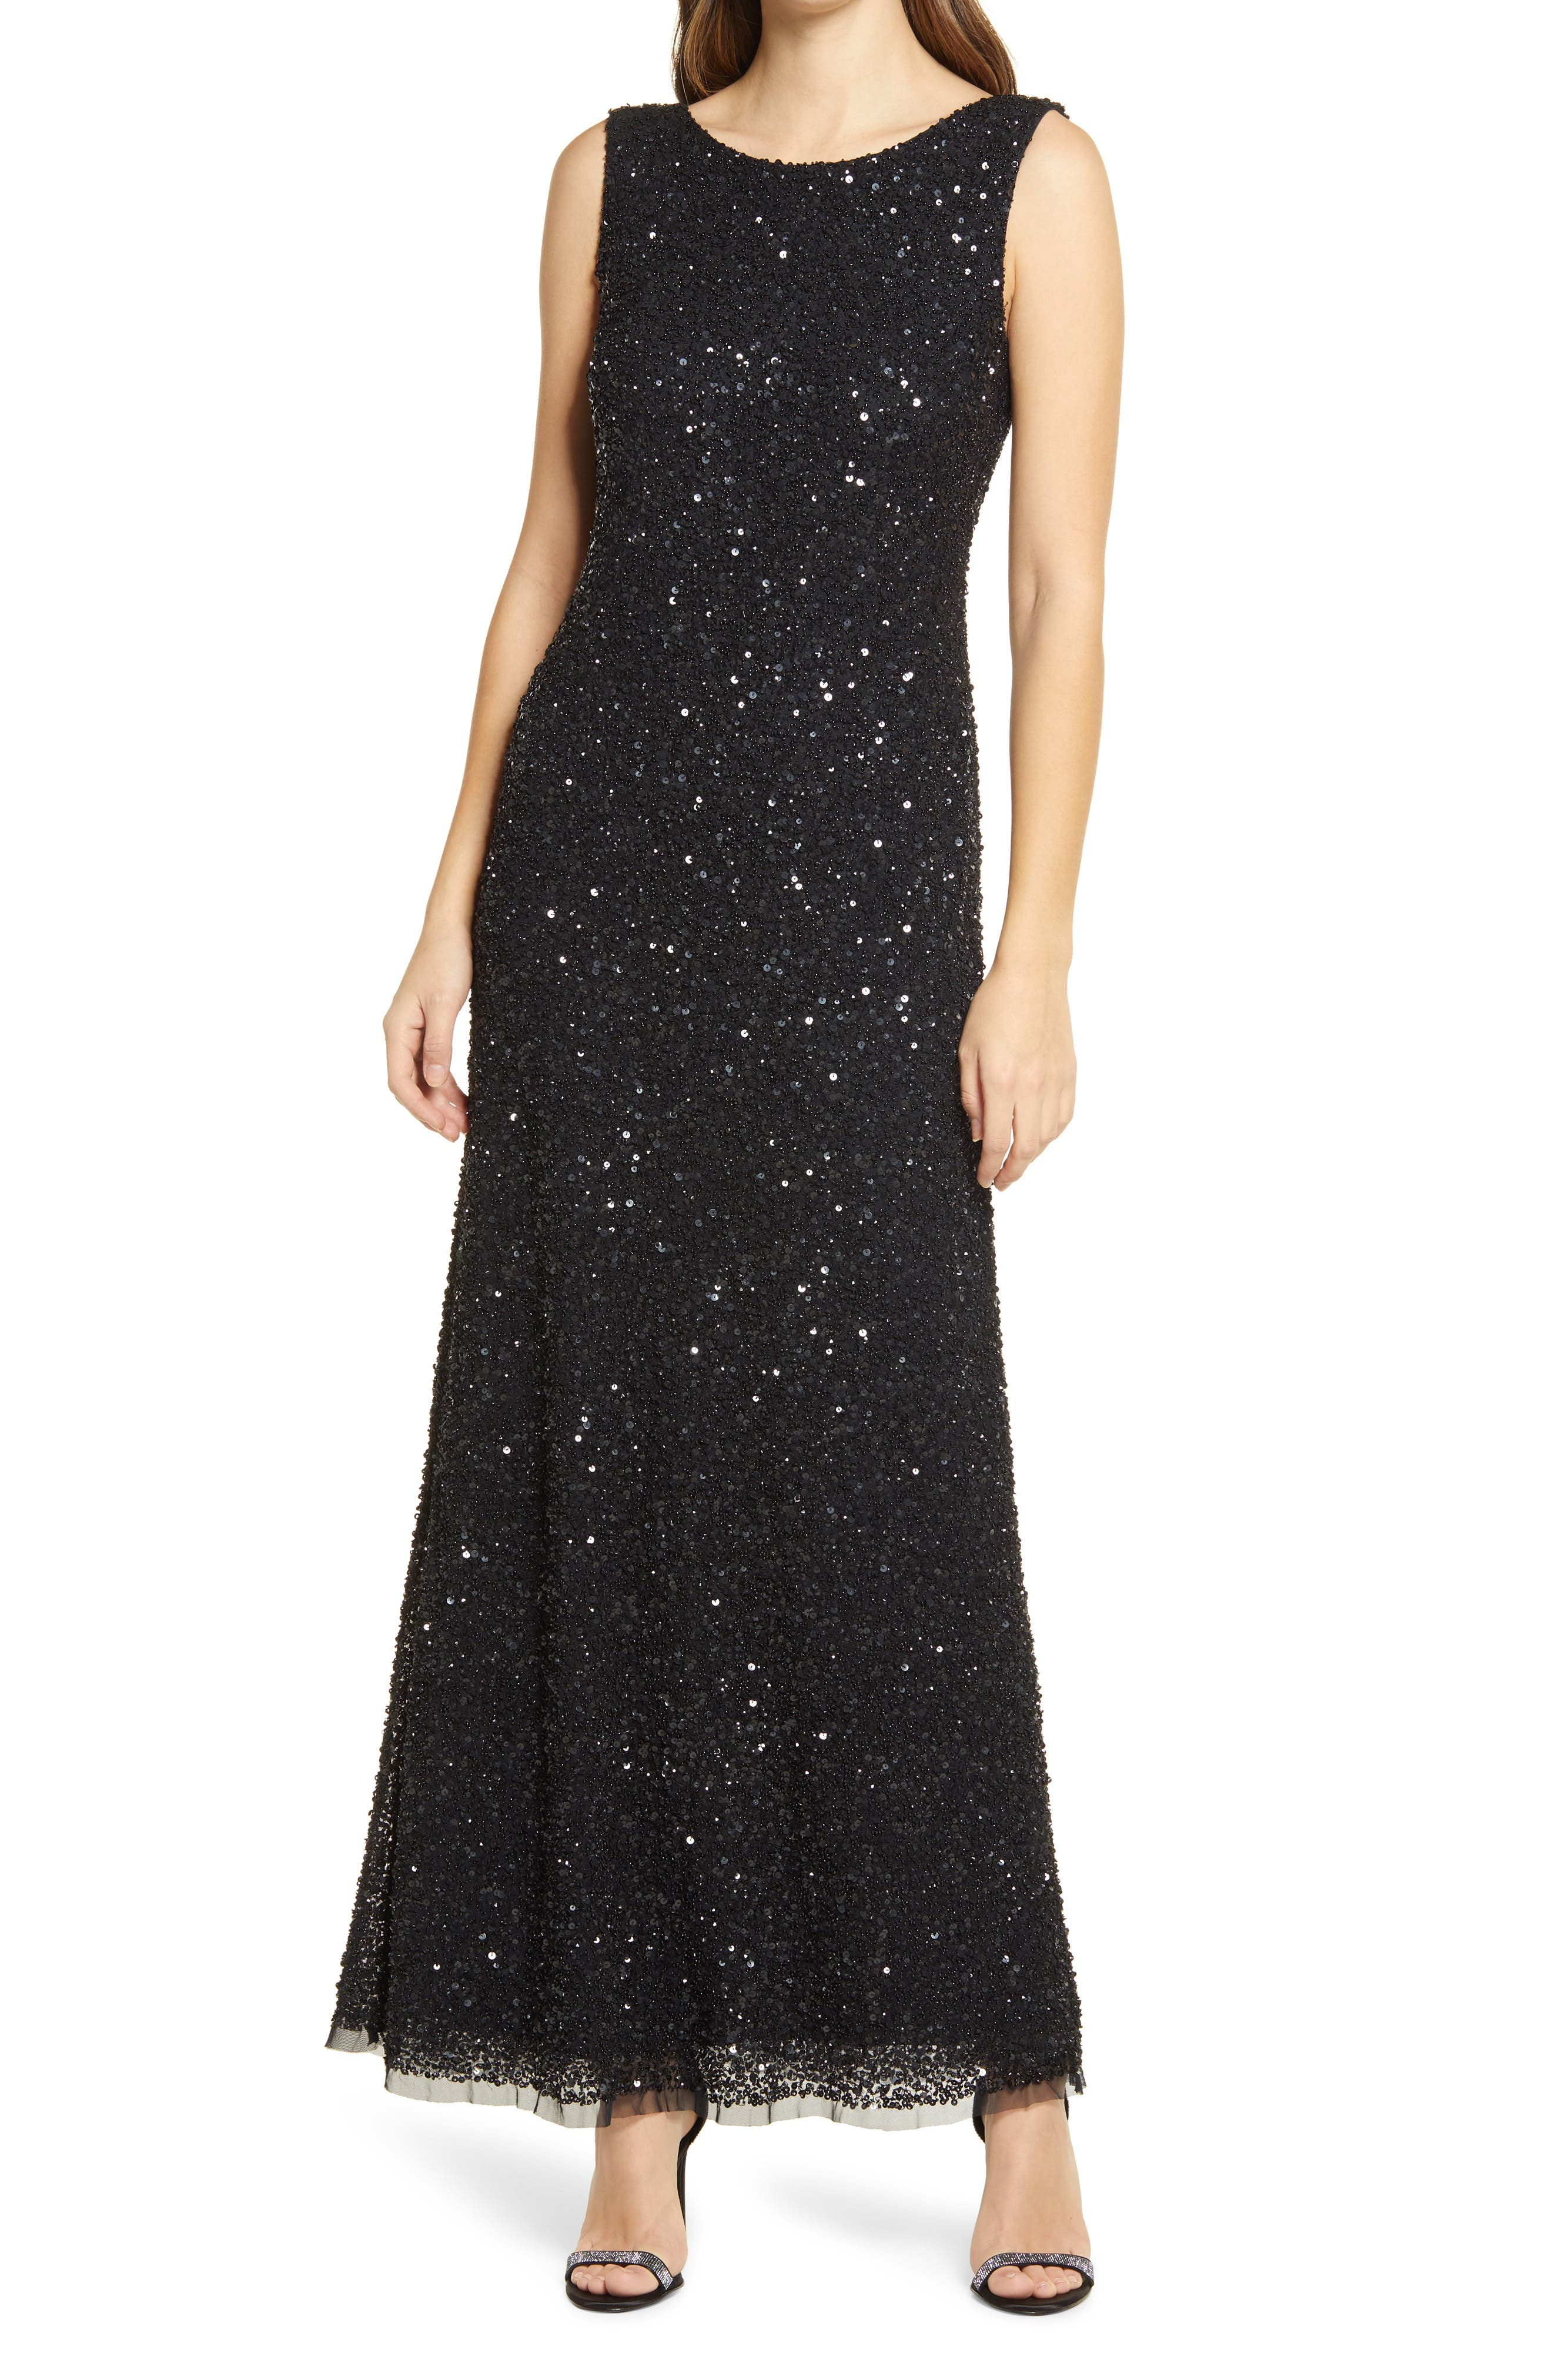 Roaring 20s Costumes- Flapper Costumes, Gangster Costumes Womens Pisarro Nights Sequin Mesh A-Line Gown Size 14 - Black $278.00 AT vintagedancer.com